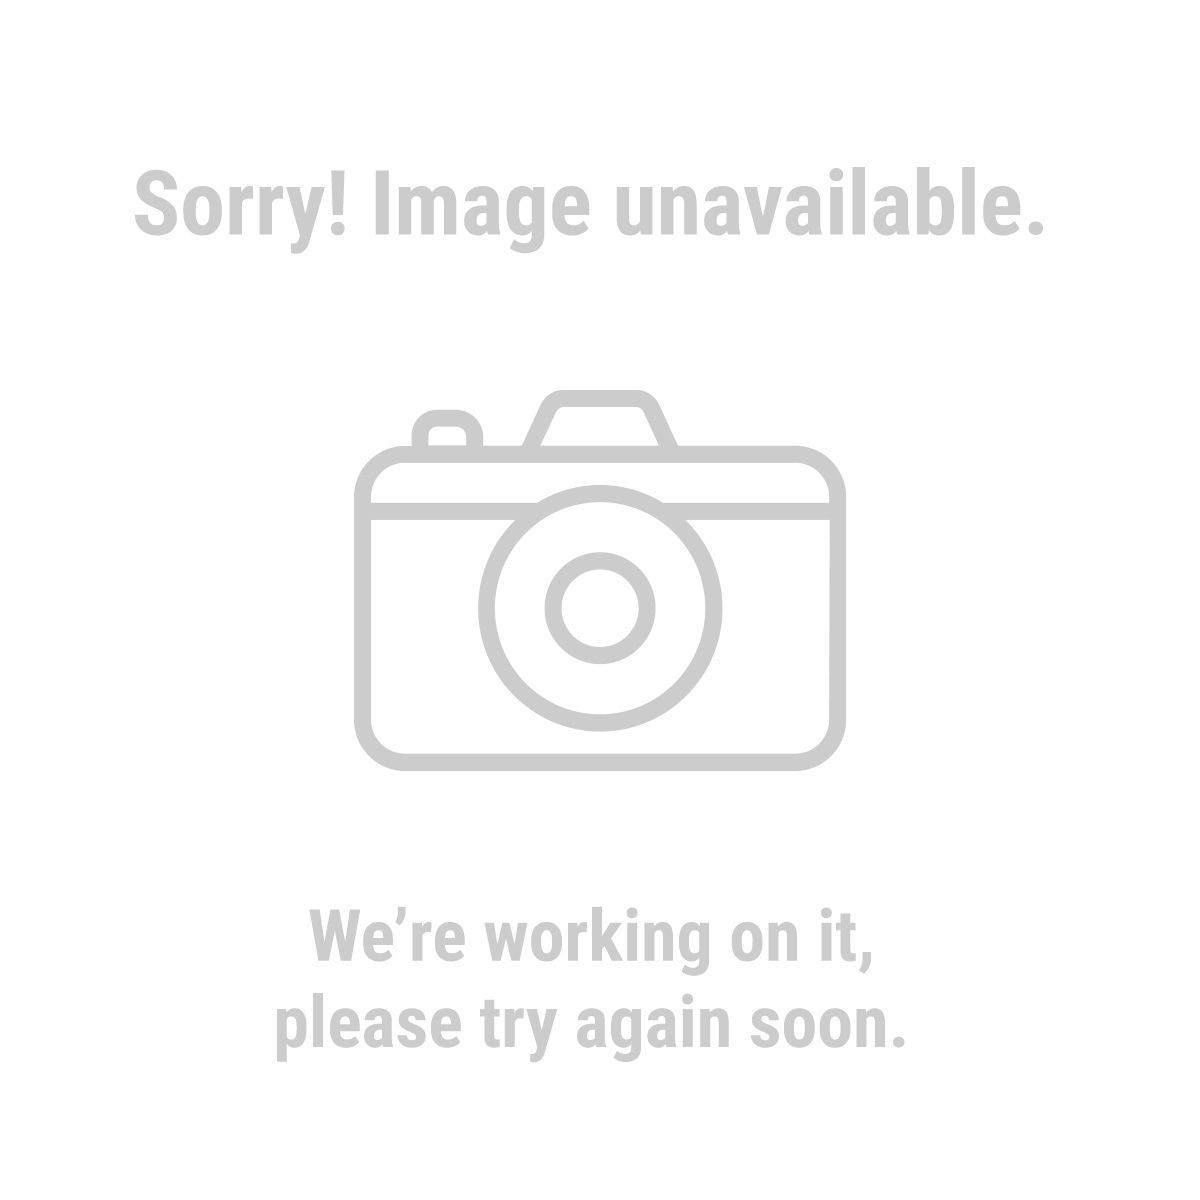 Haul-Master® 66345 Clevis Trailer Pin Mount